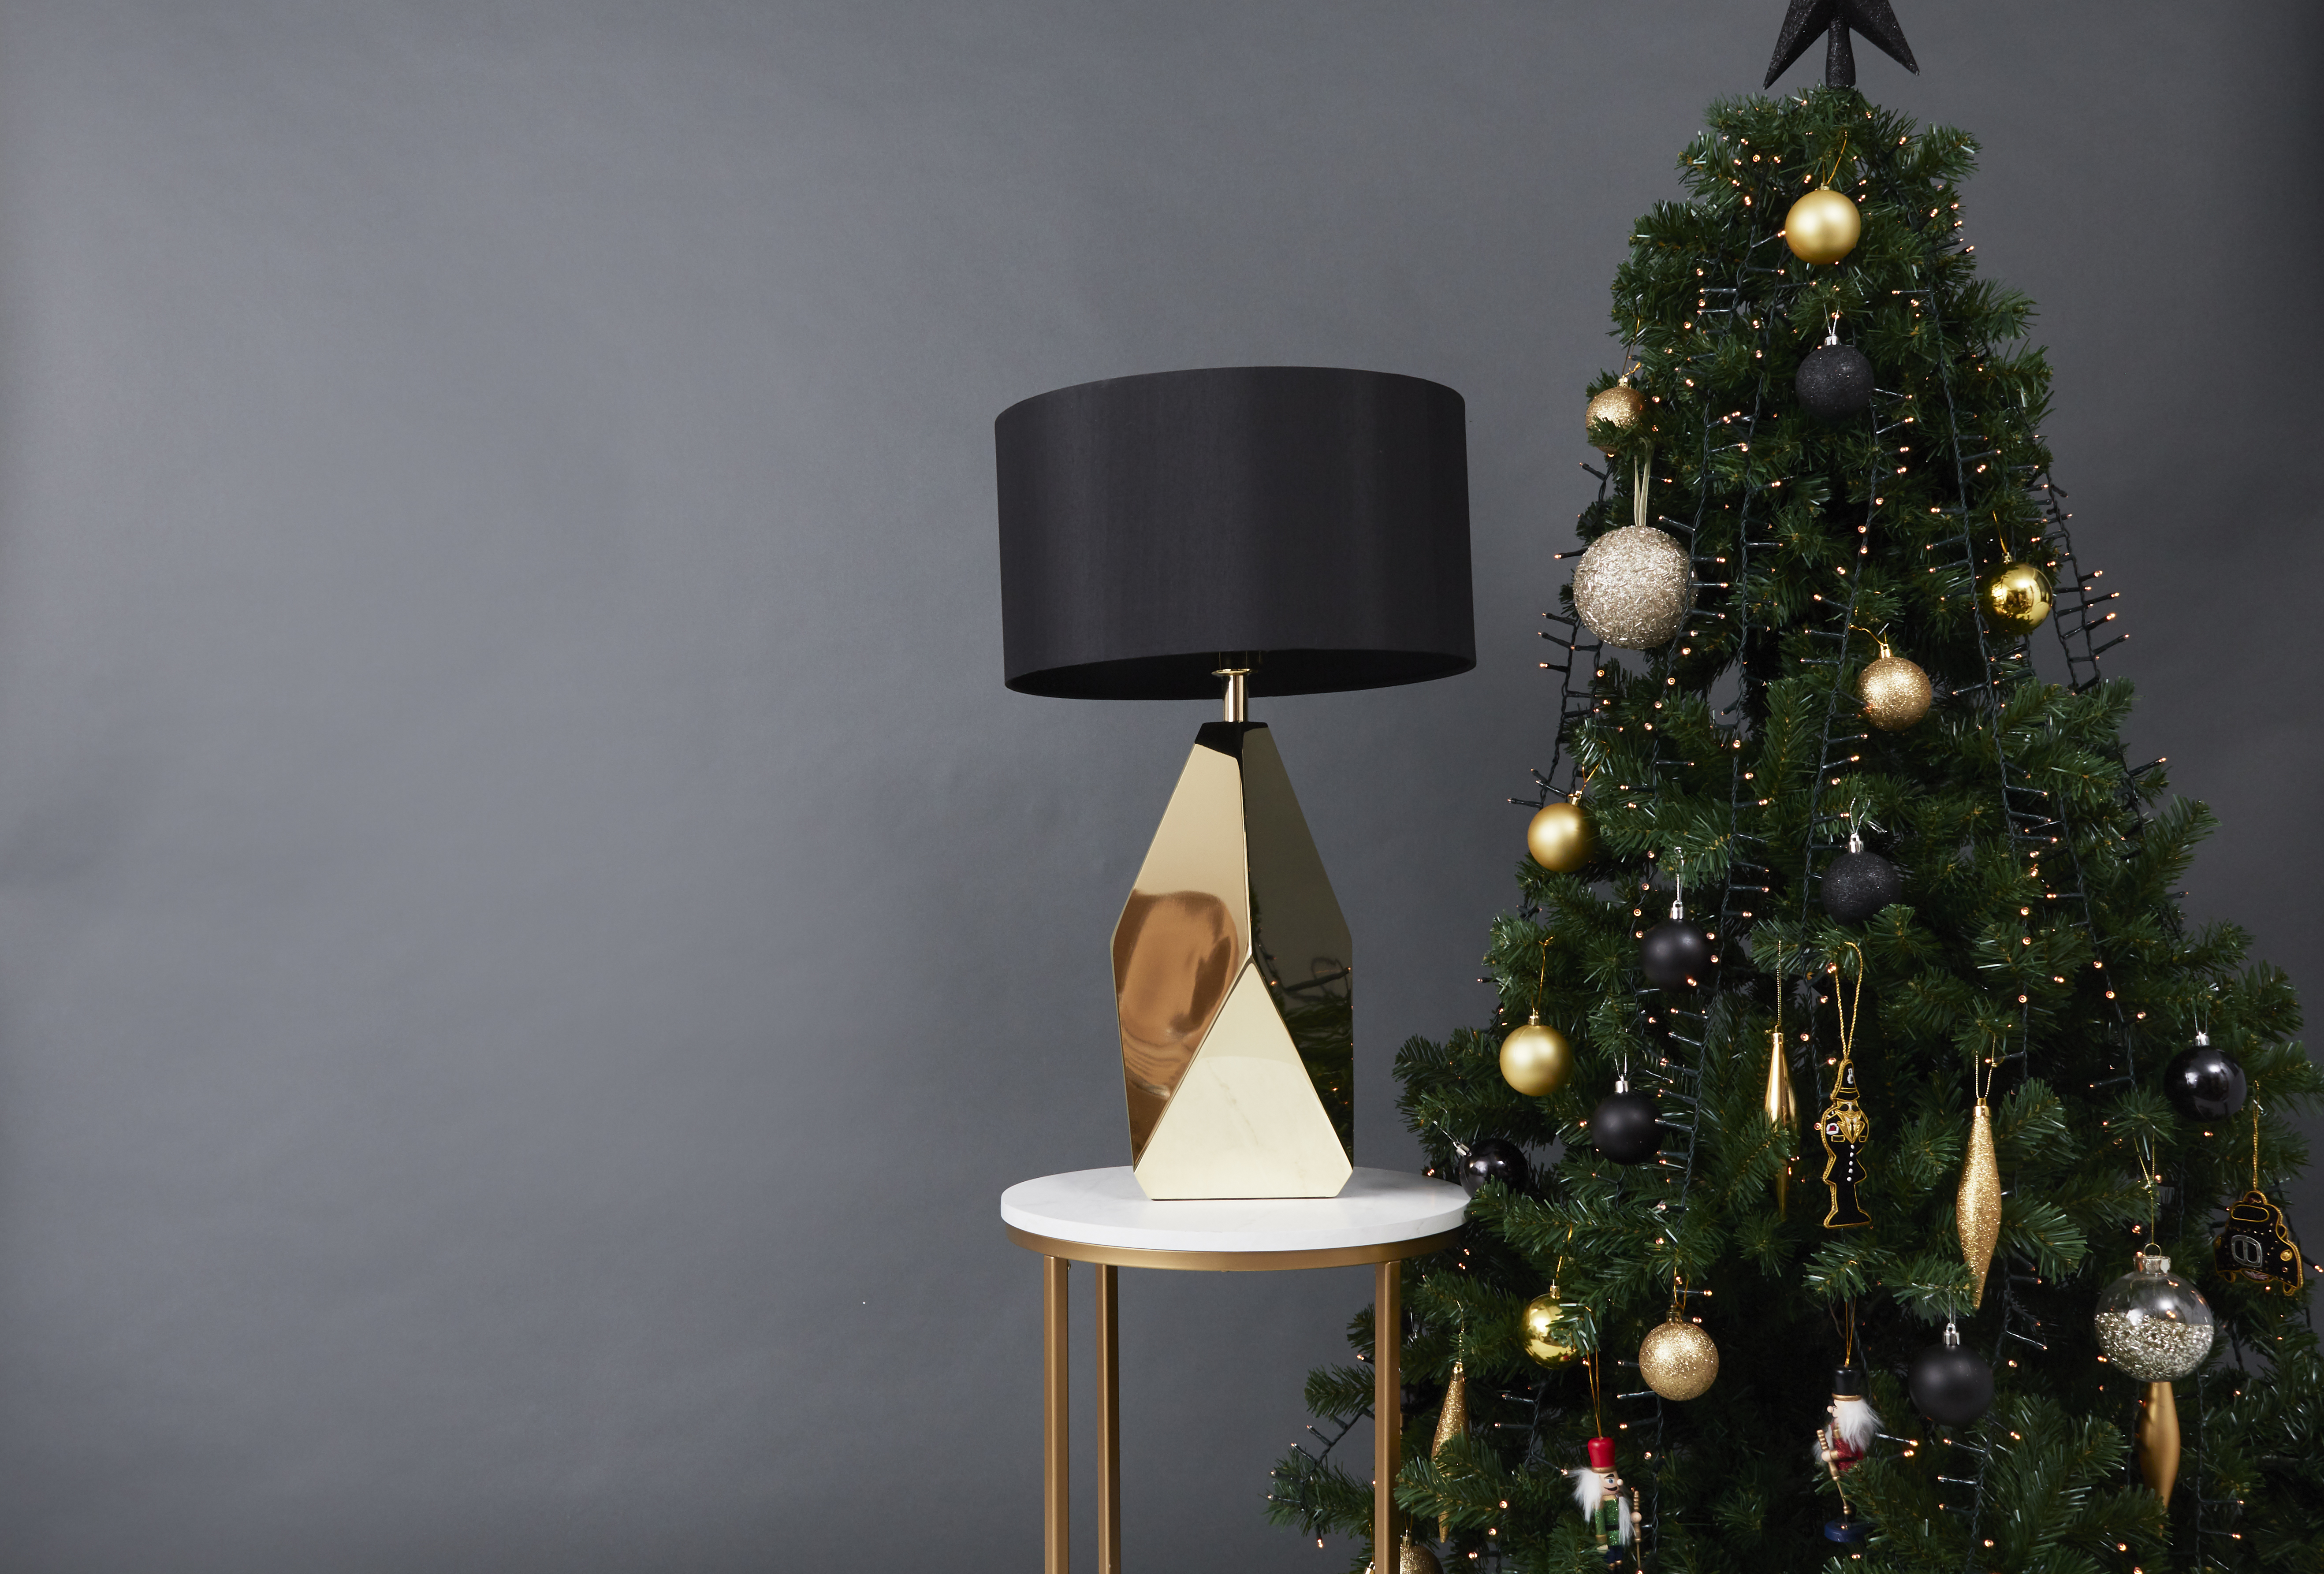 Latrobe Table Lamp and Christmas Tree